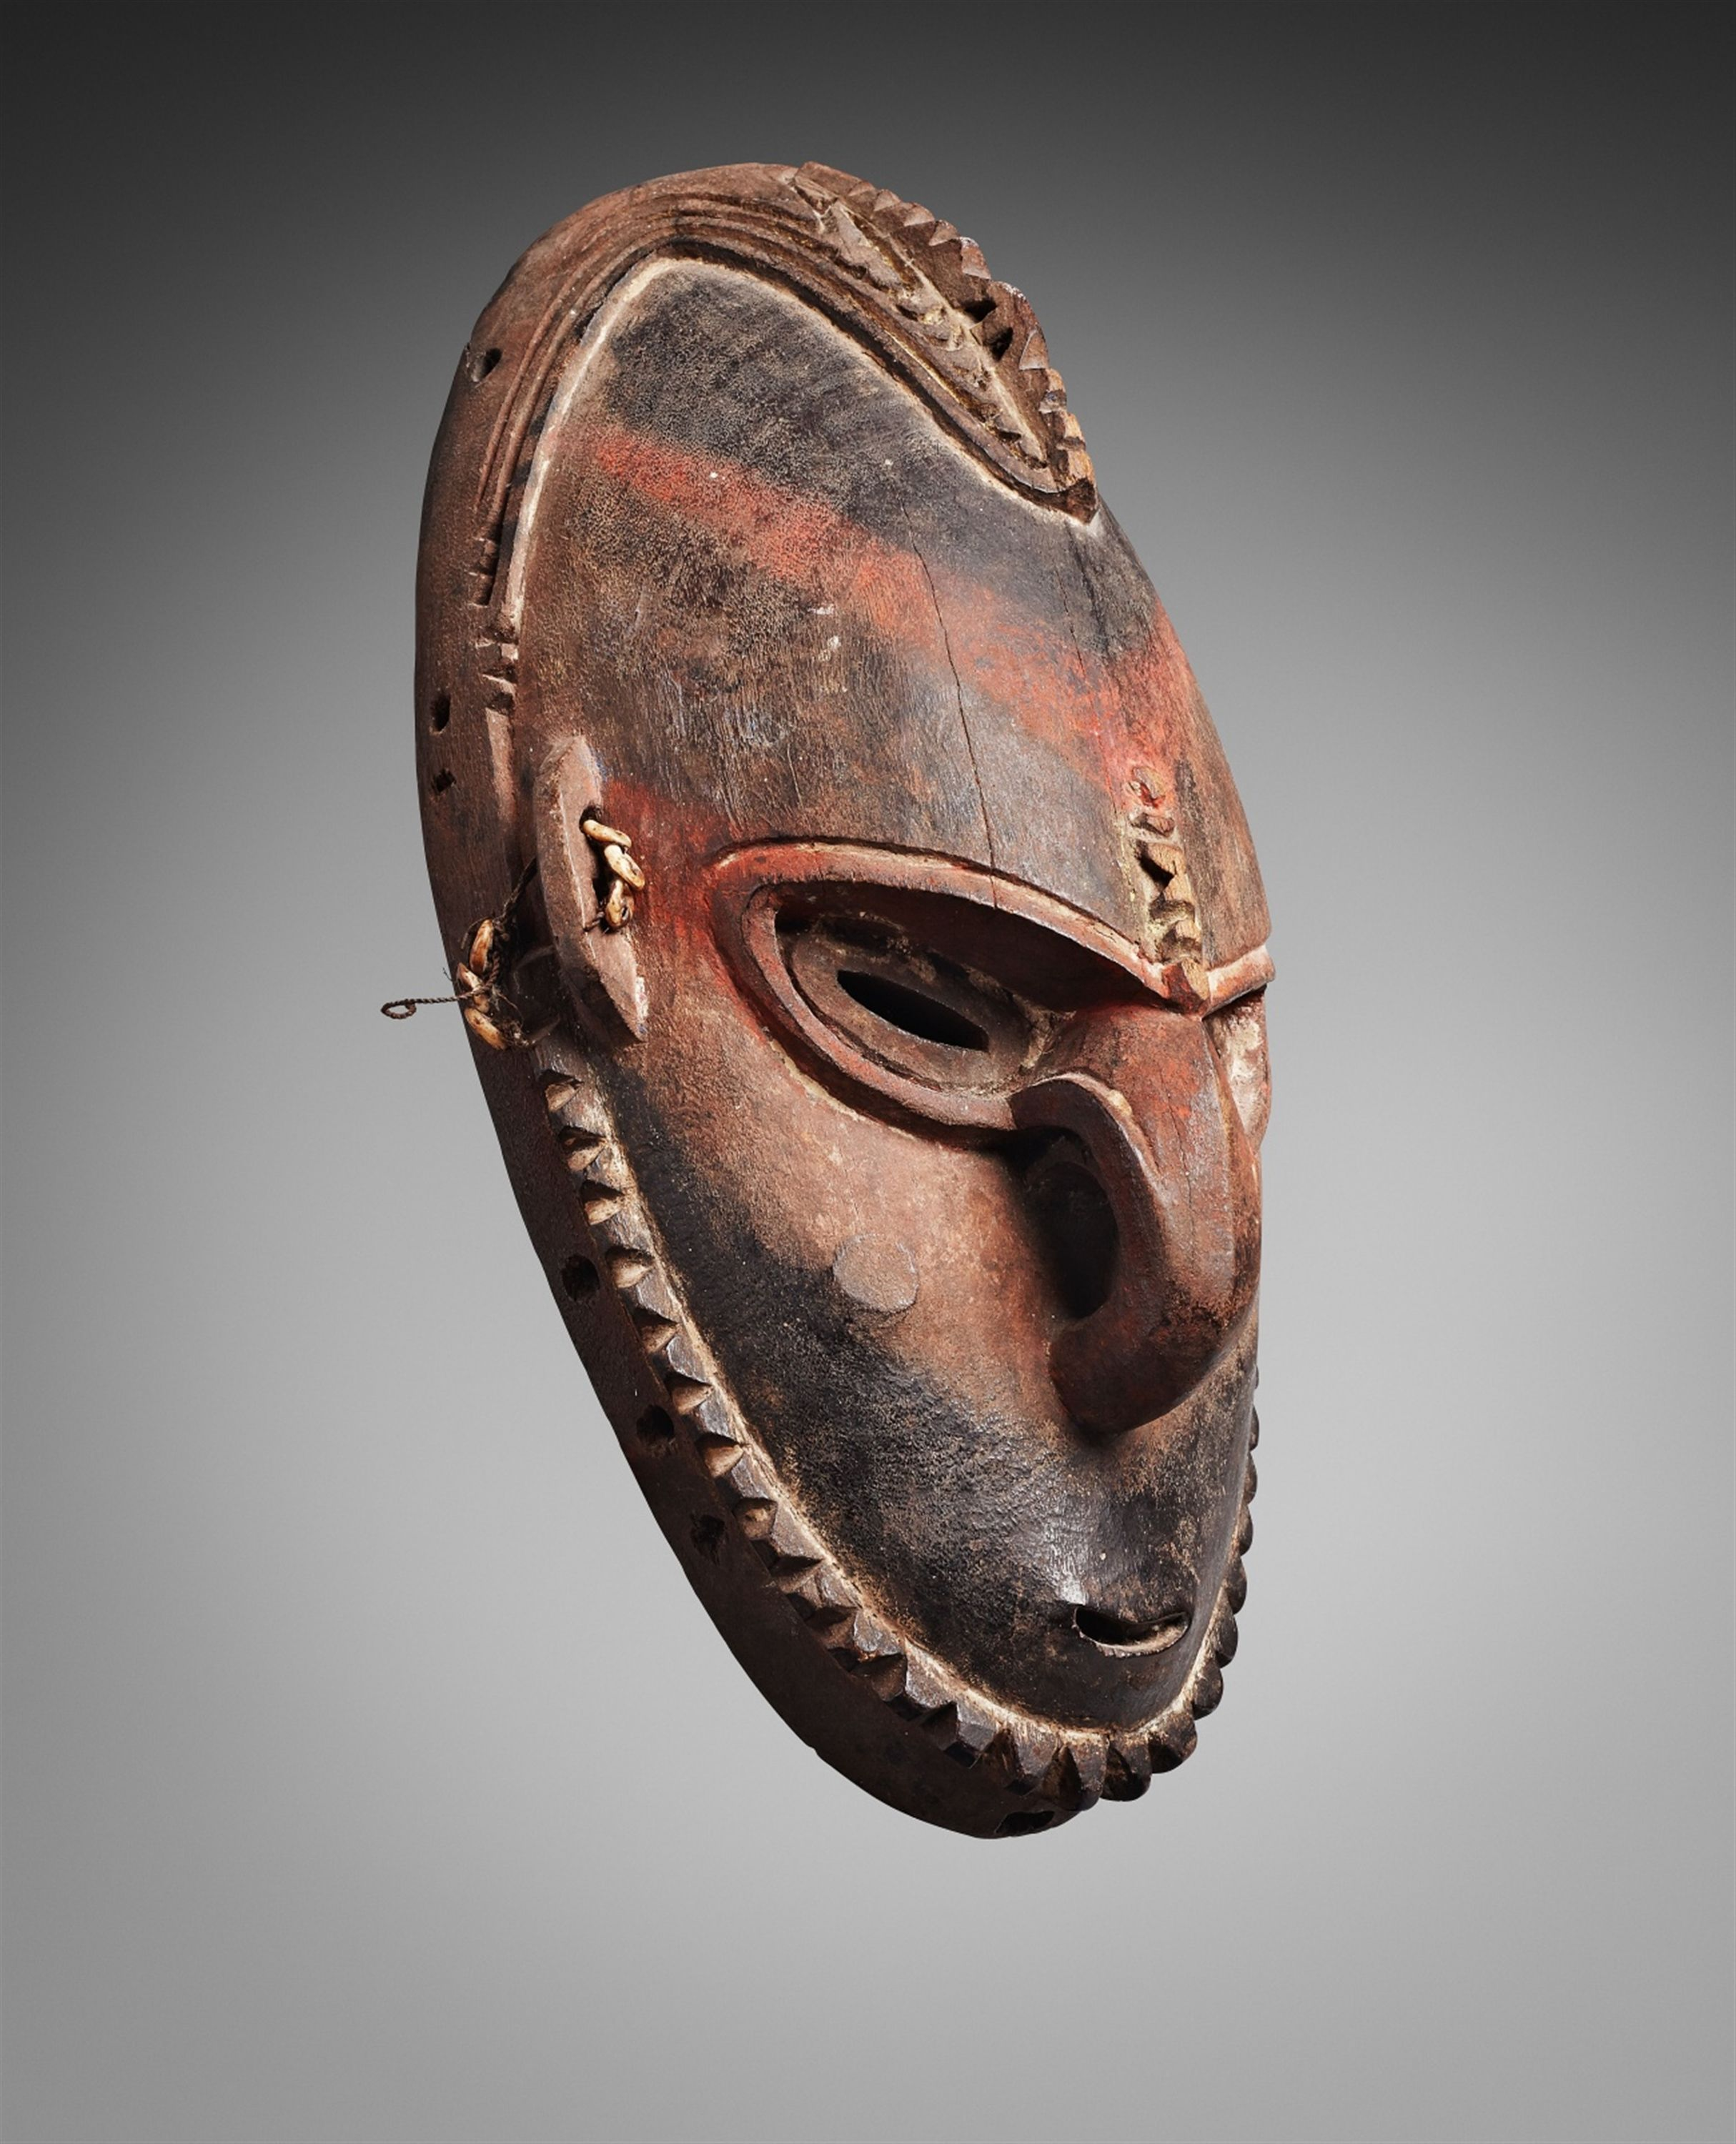 Papua New GuineaA SEPIK MASK, Auction 1063 African and Oceanic Art, Lot 122